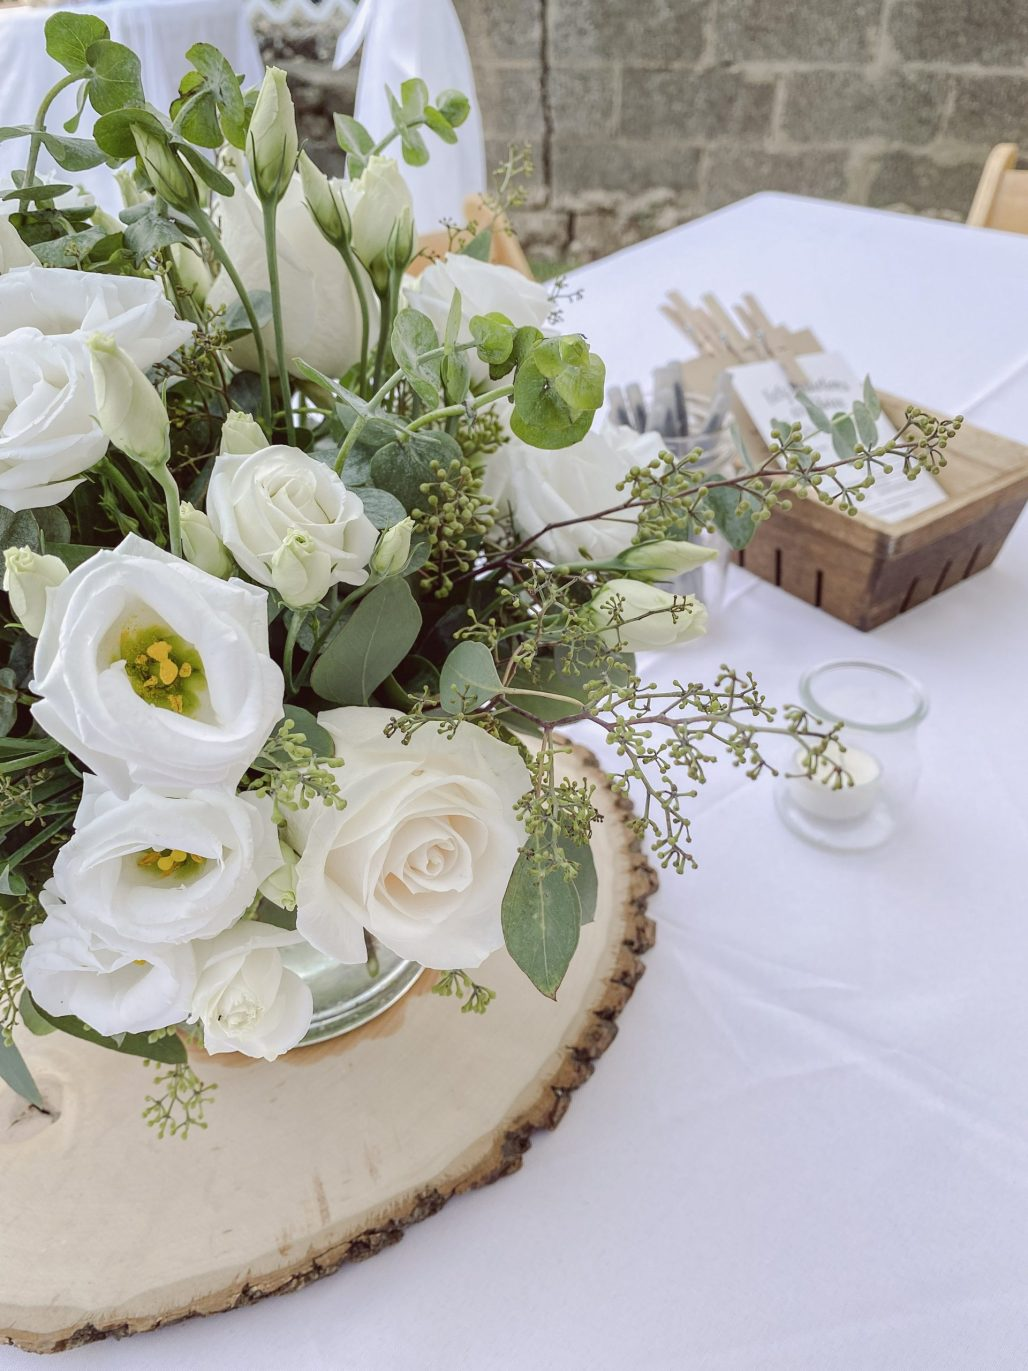 When a Rescheduled Baby Shower becomes a Calming & Safe Outdoor Affair    Dreamery Events